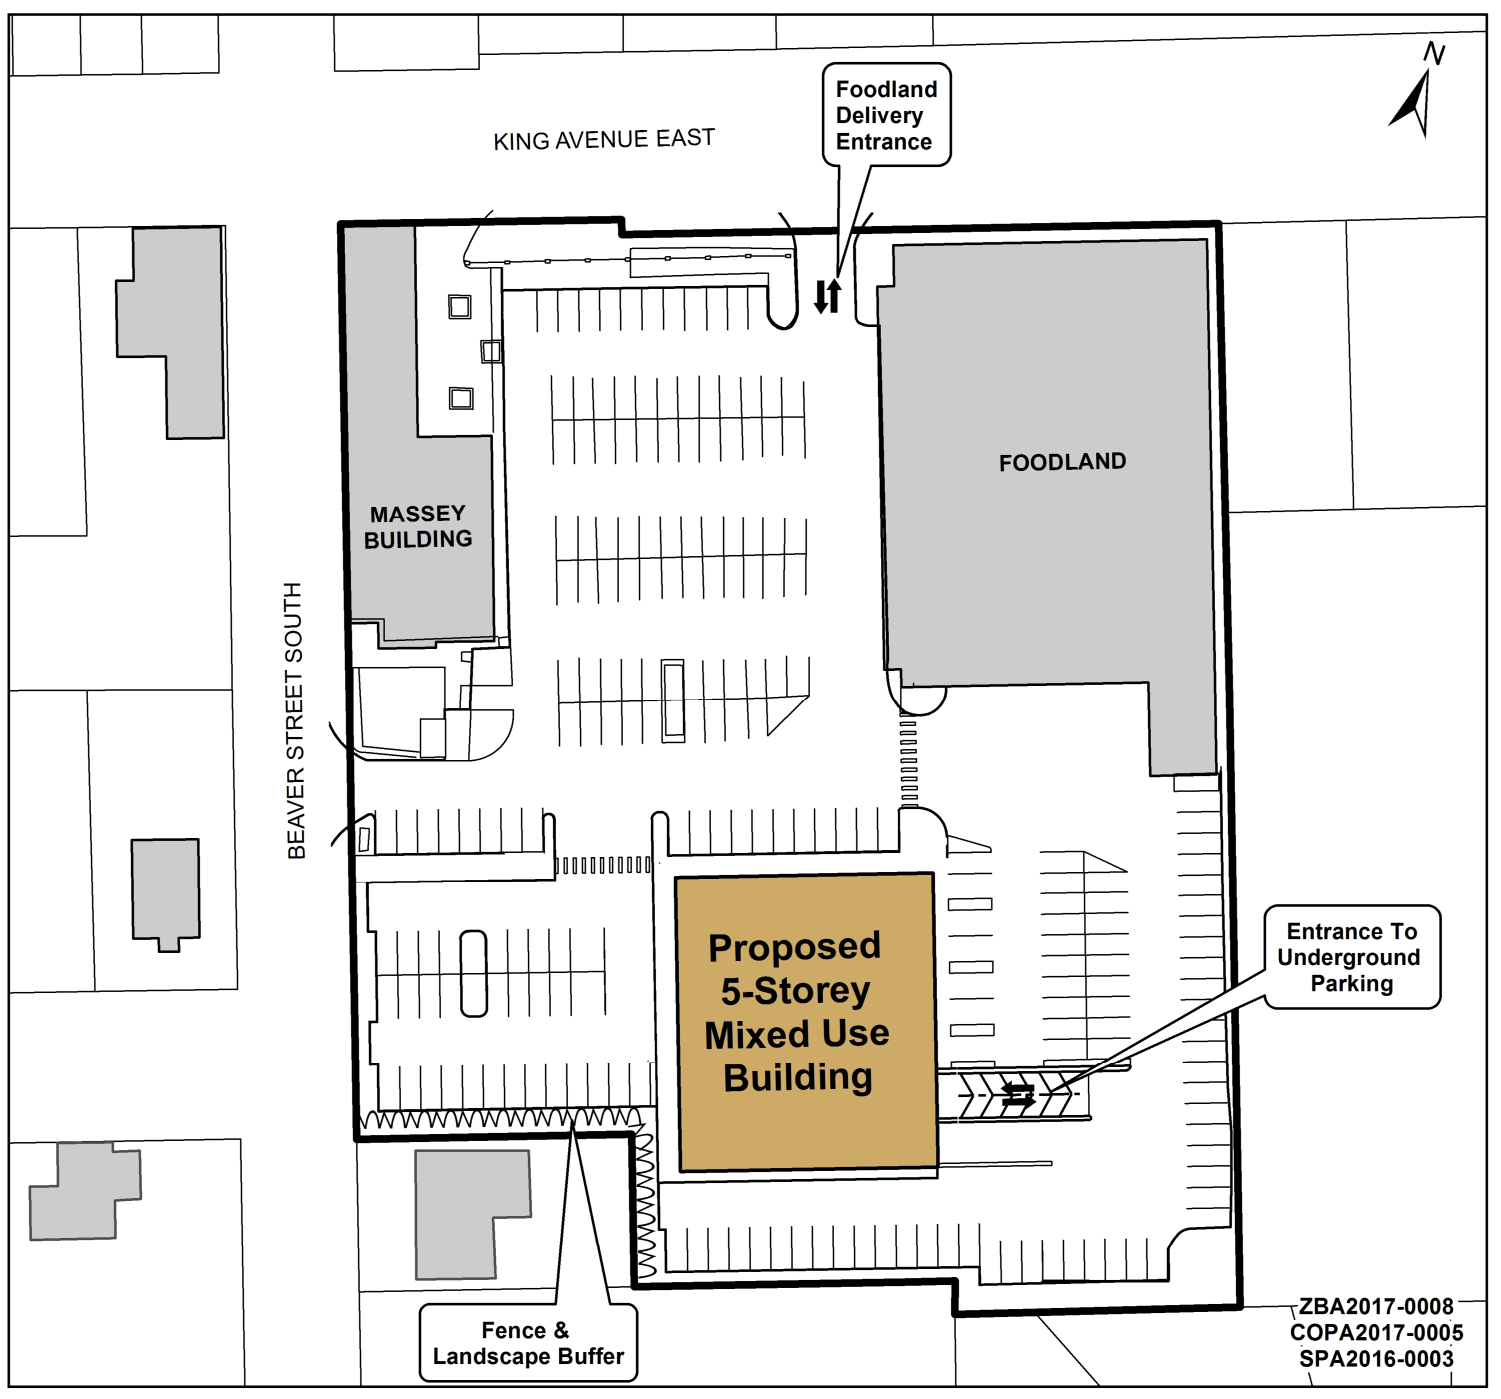 Key map showing location of five-storey, mixed-use building